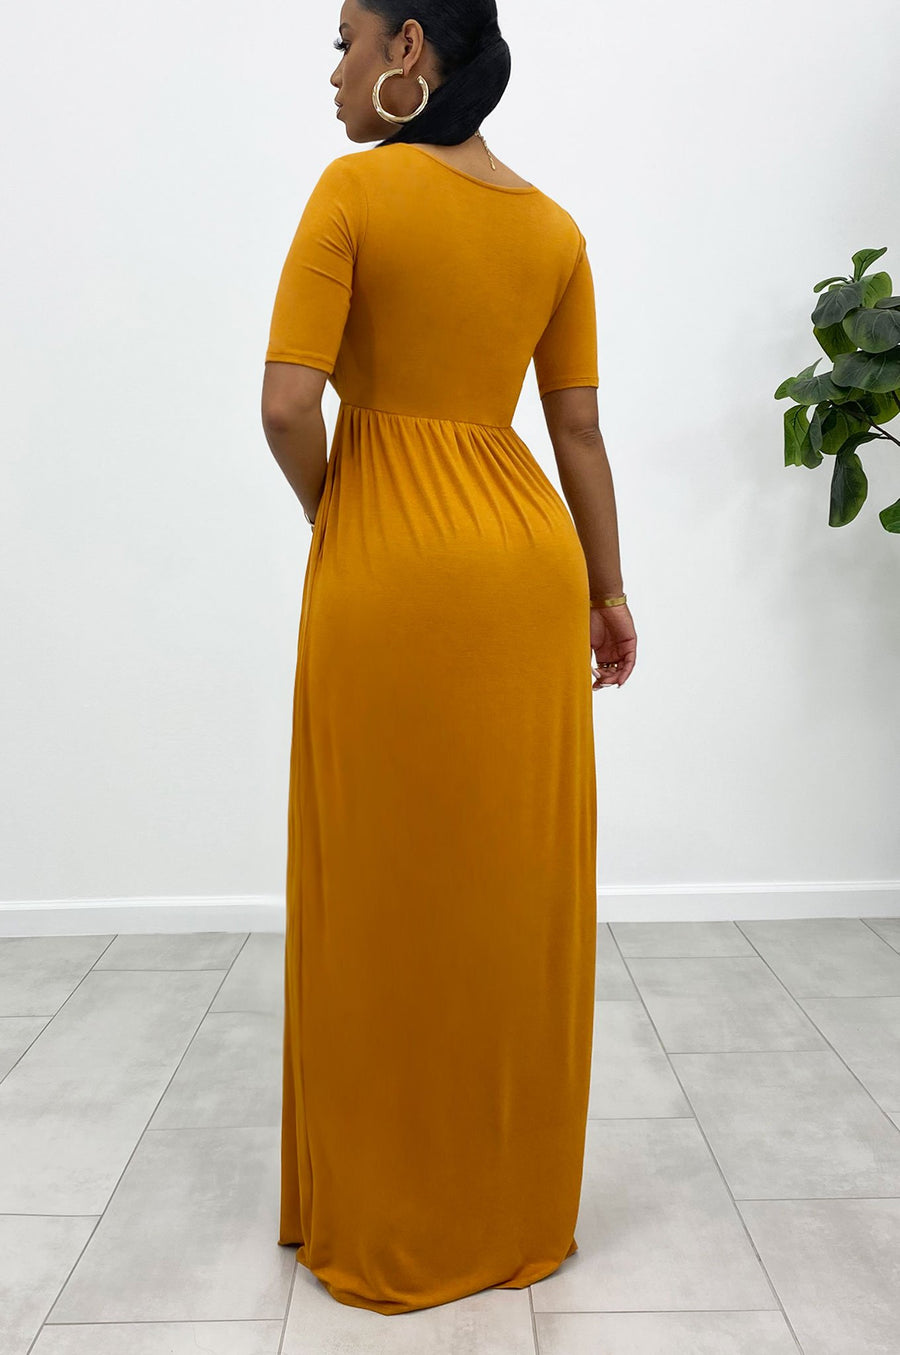 Anywhere And Everywhere Maxi Dress (Mustard) PRE-ORDER 6/8